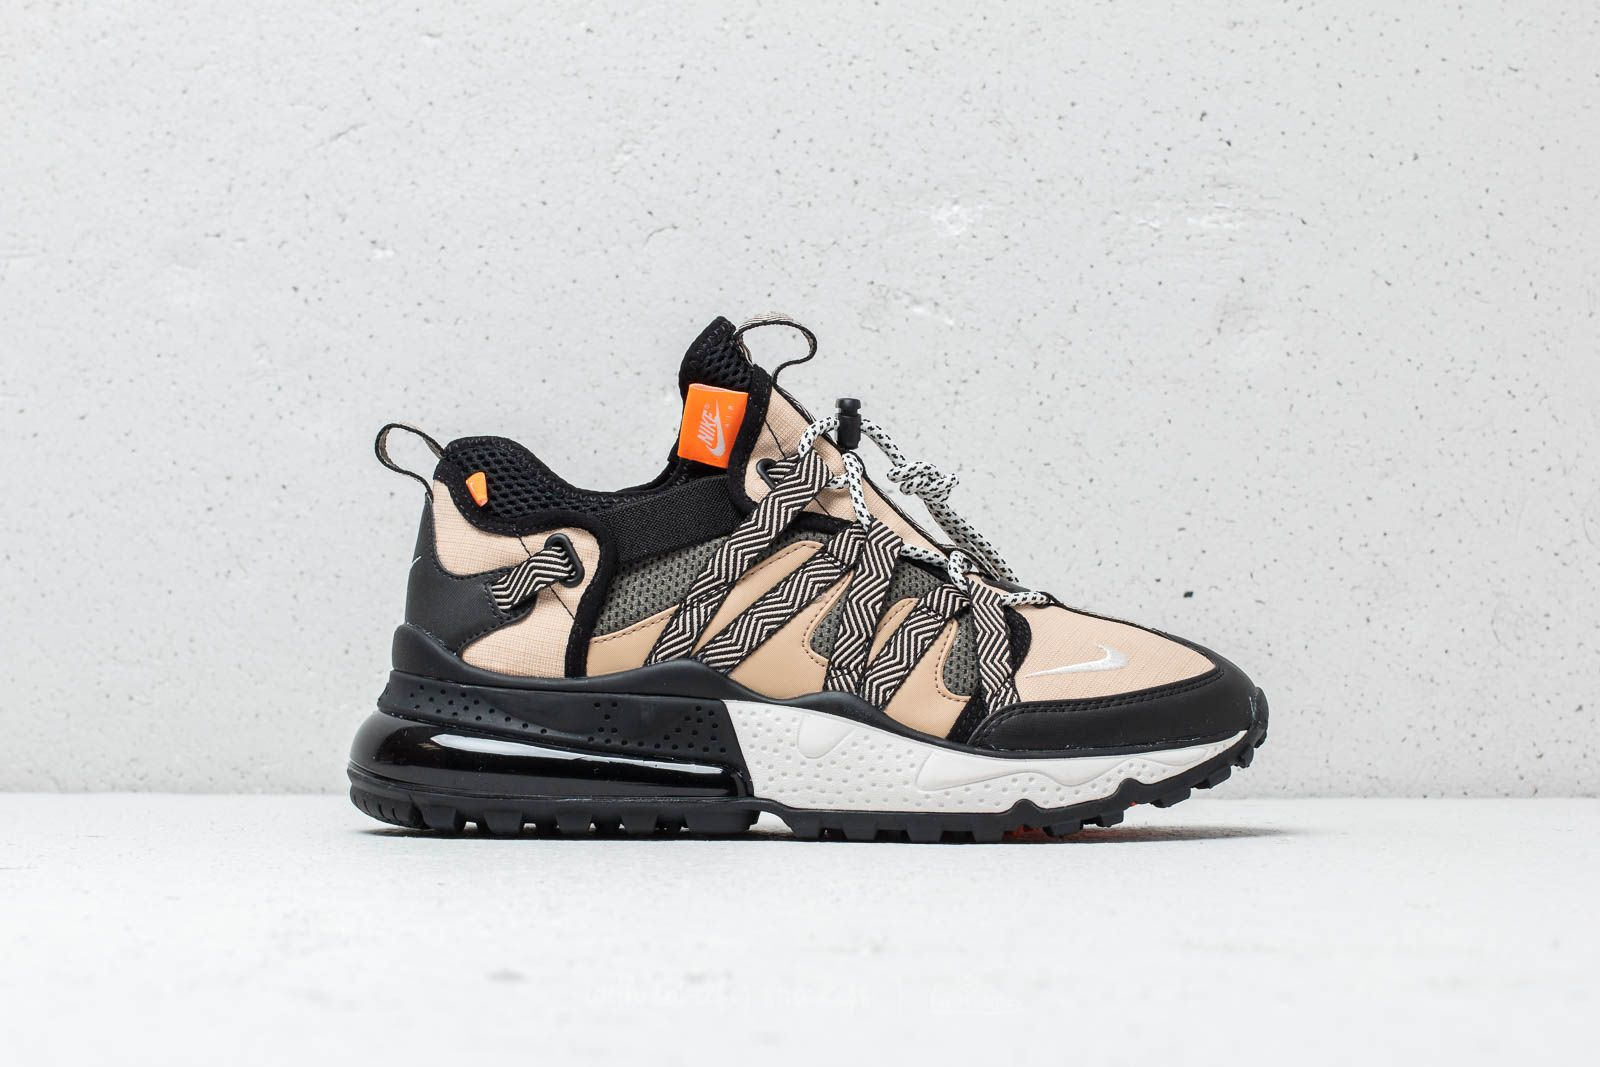 Nike Air Max 270 Bowfin Black Phantom Dessert Cone | Footshop